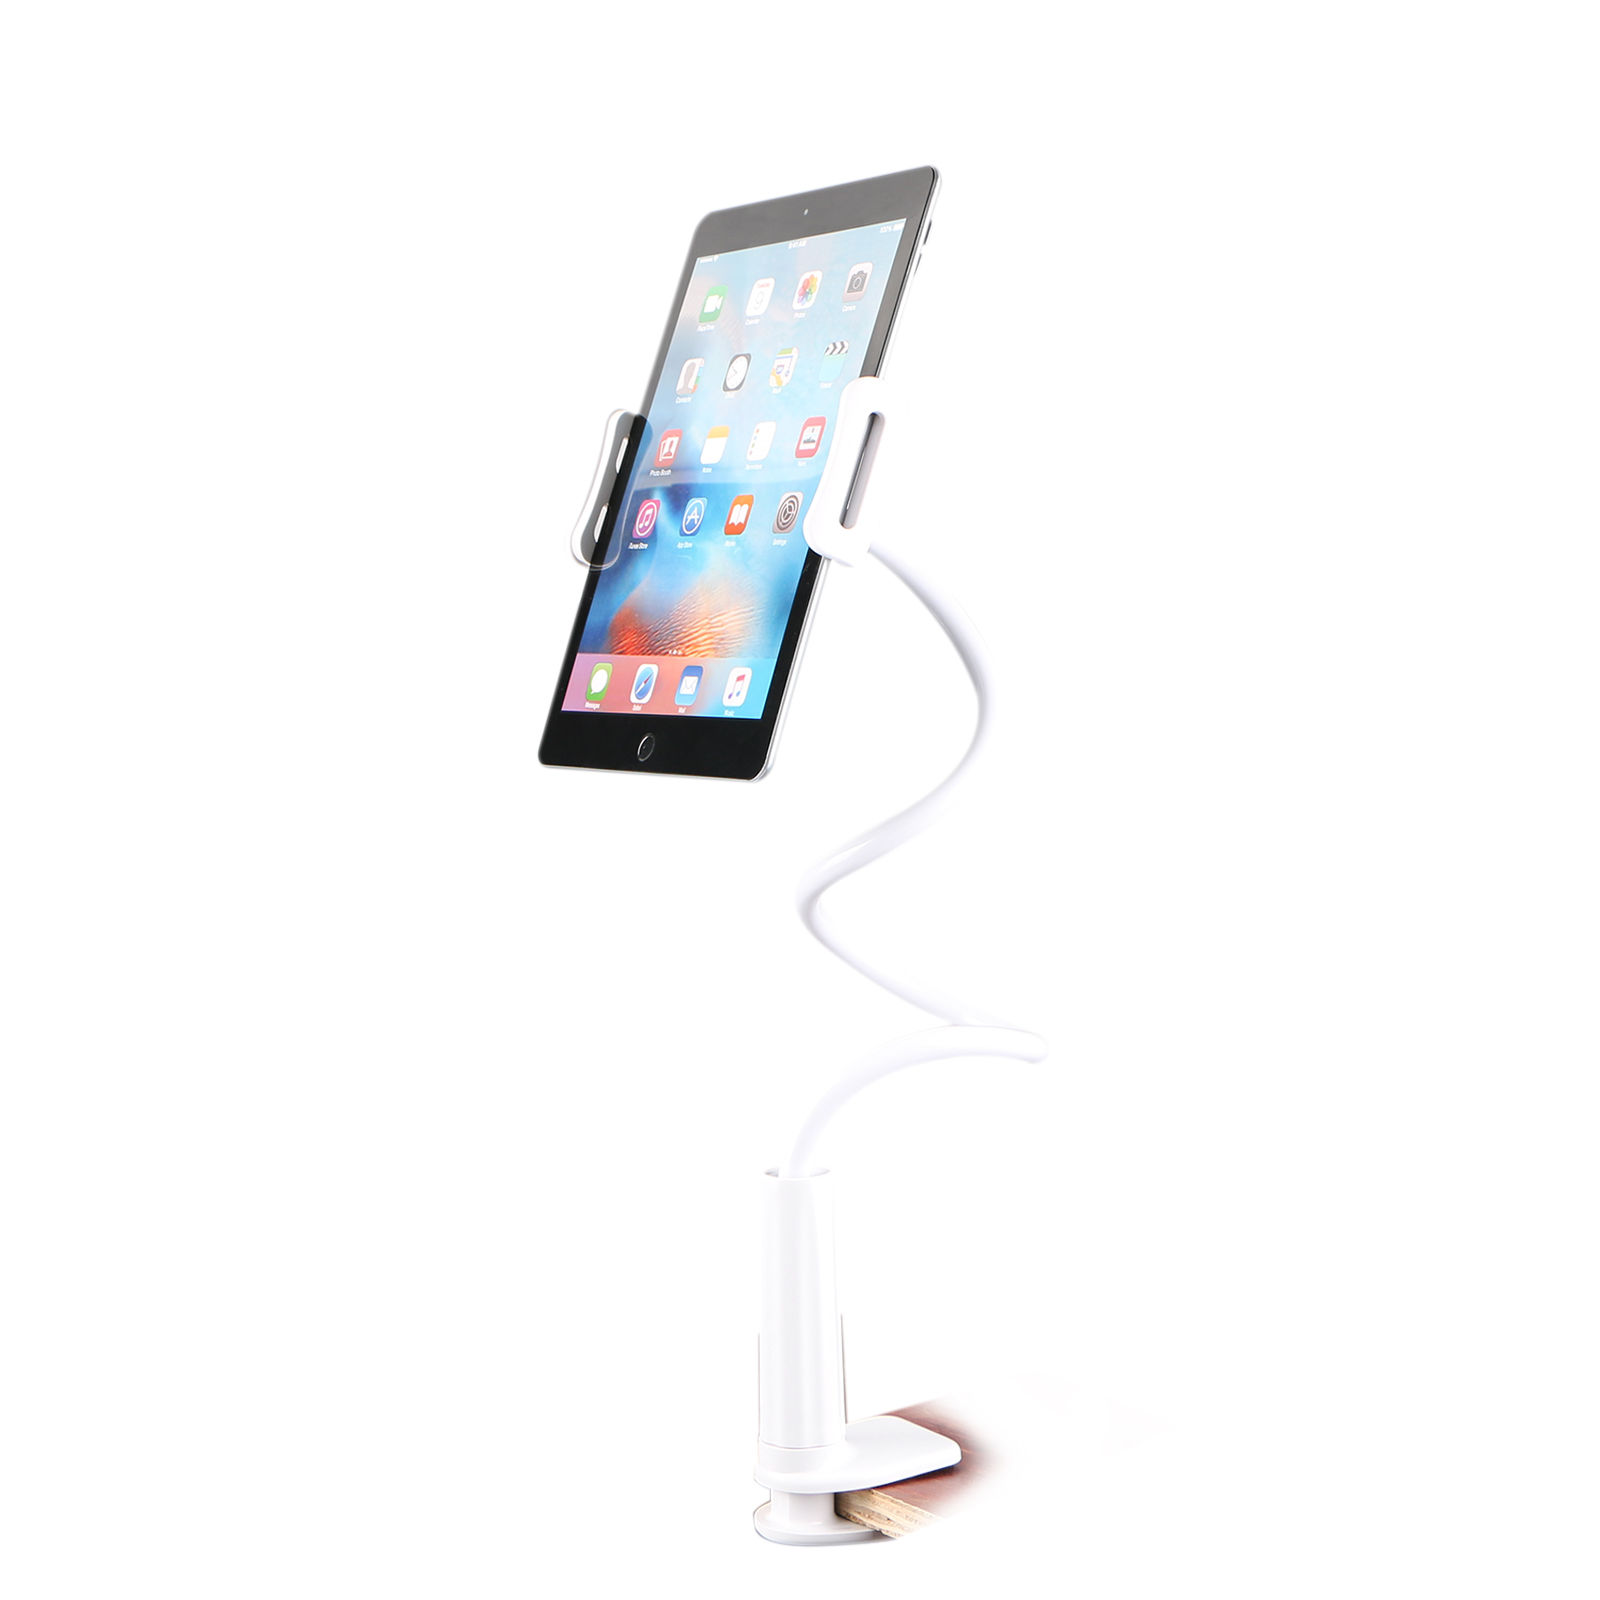 Universal-Flexible-Arm-Desktop-Bed-Lazy-Holder-Mount-Stand-for-Tablet-iPad-2-3-4